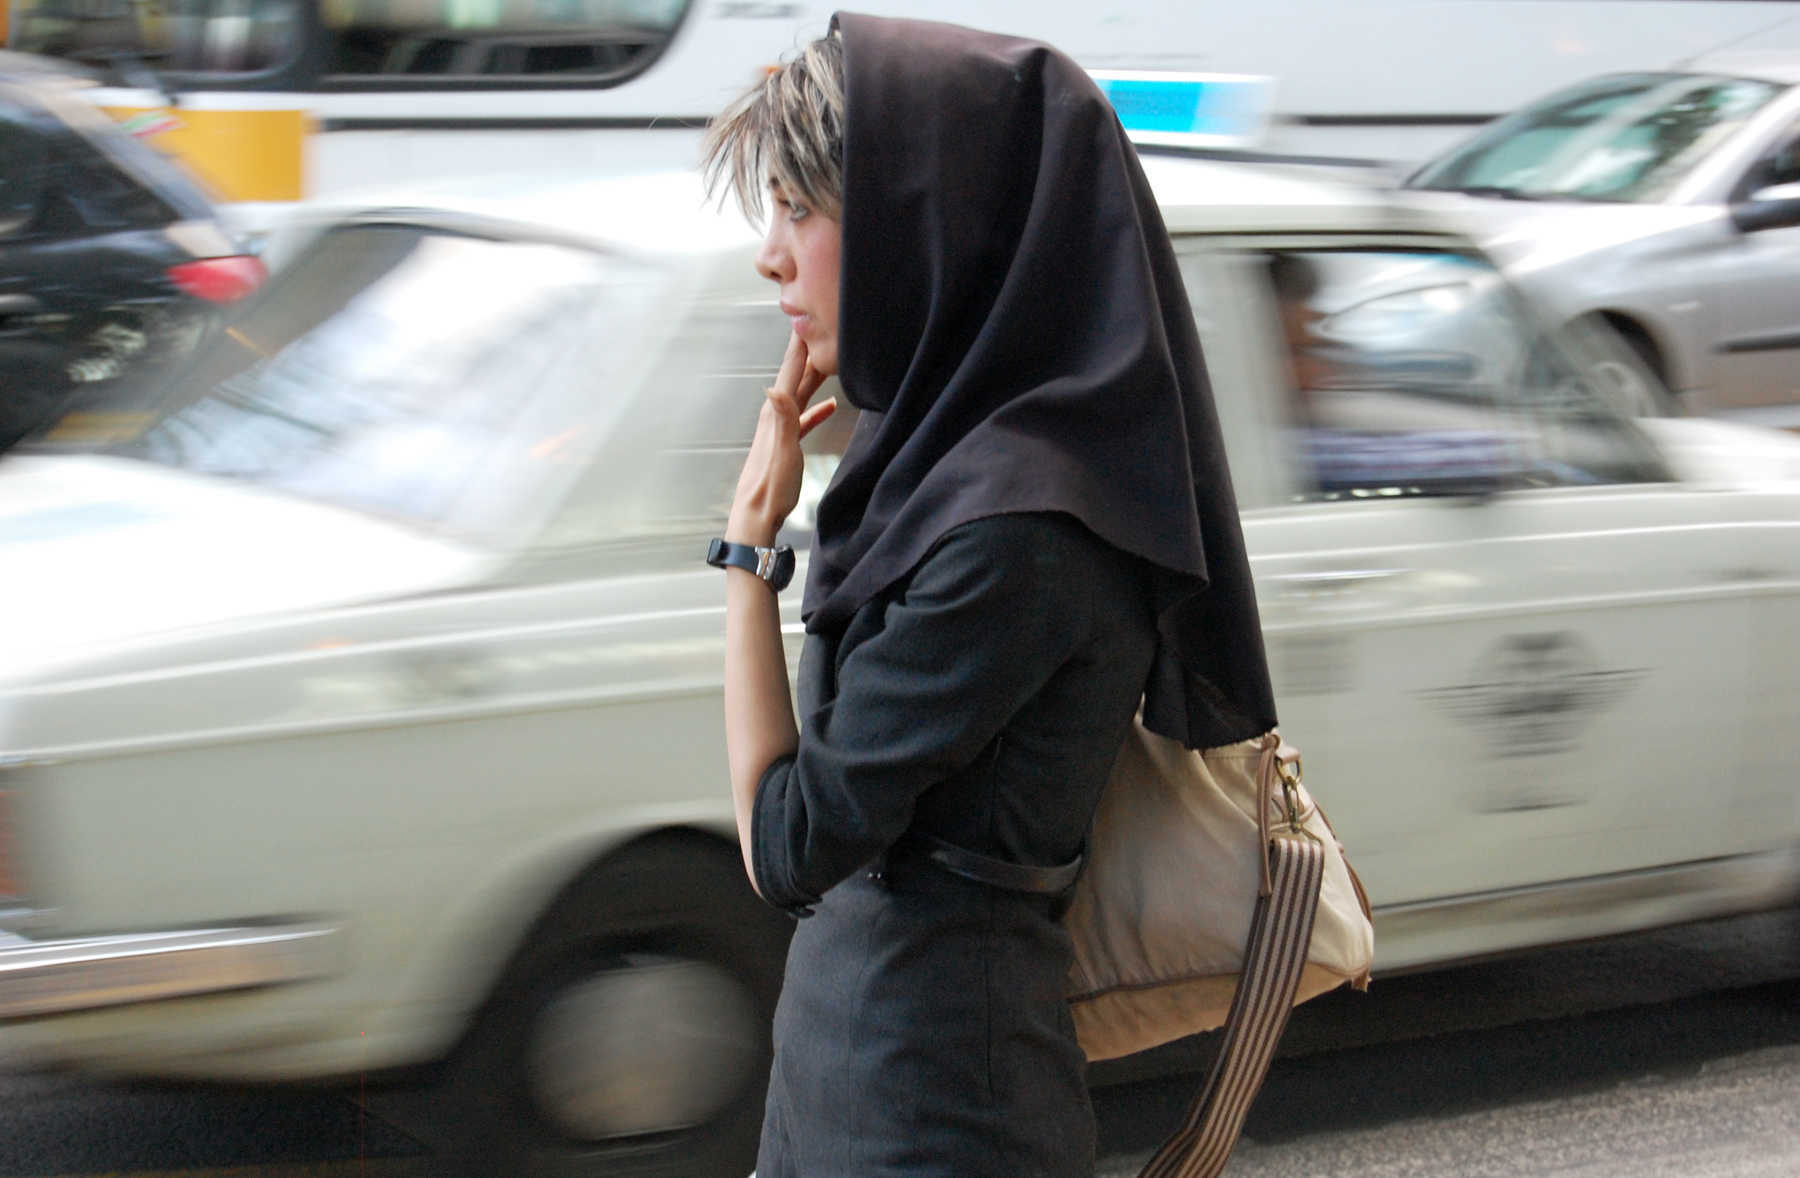 Woman with Bangs, Iran